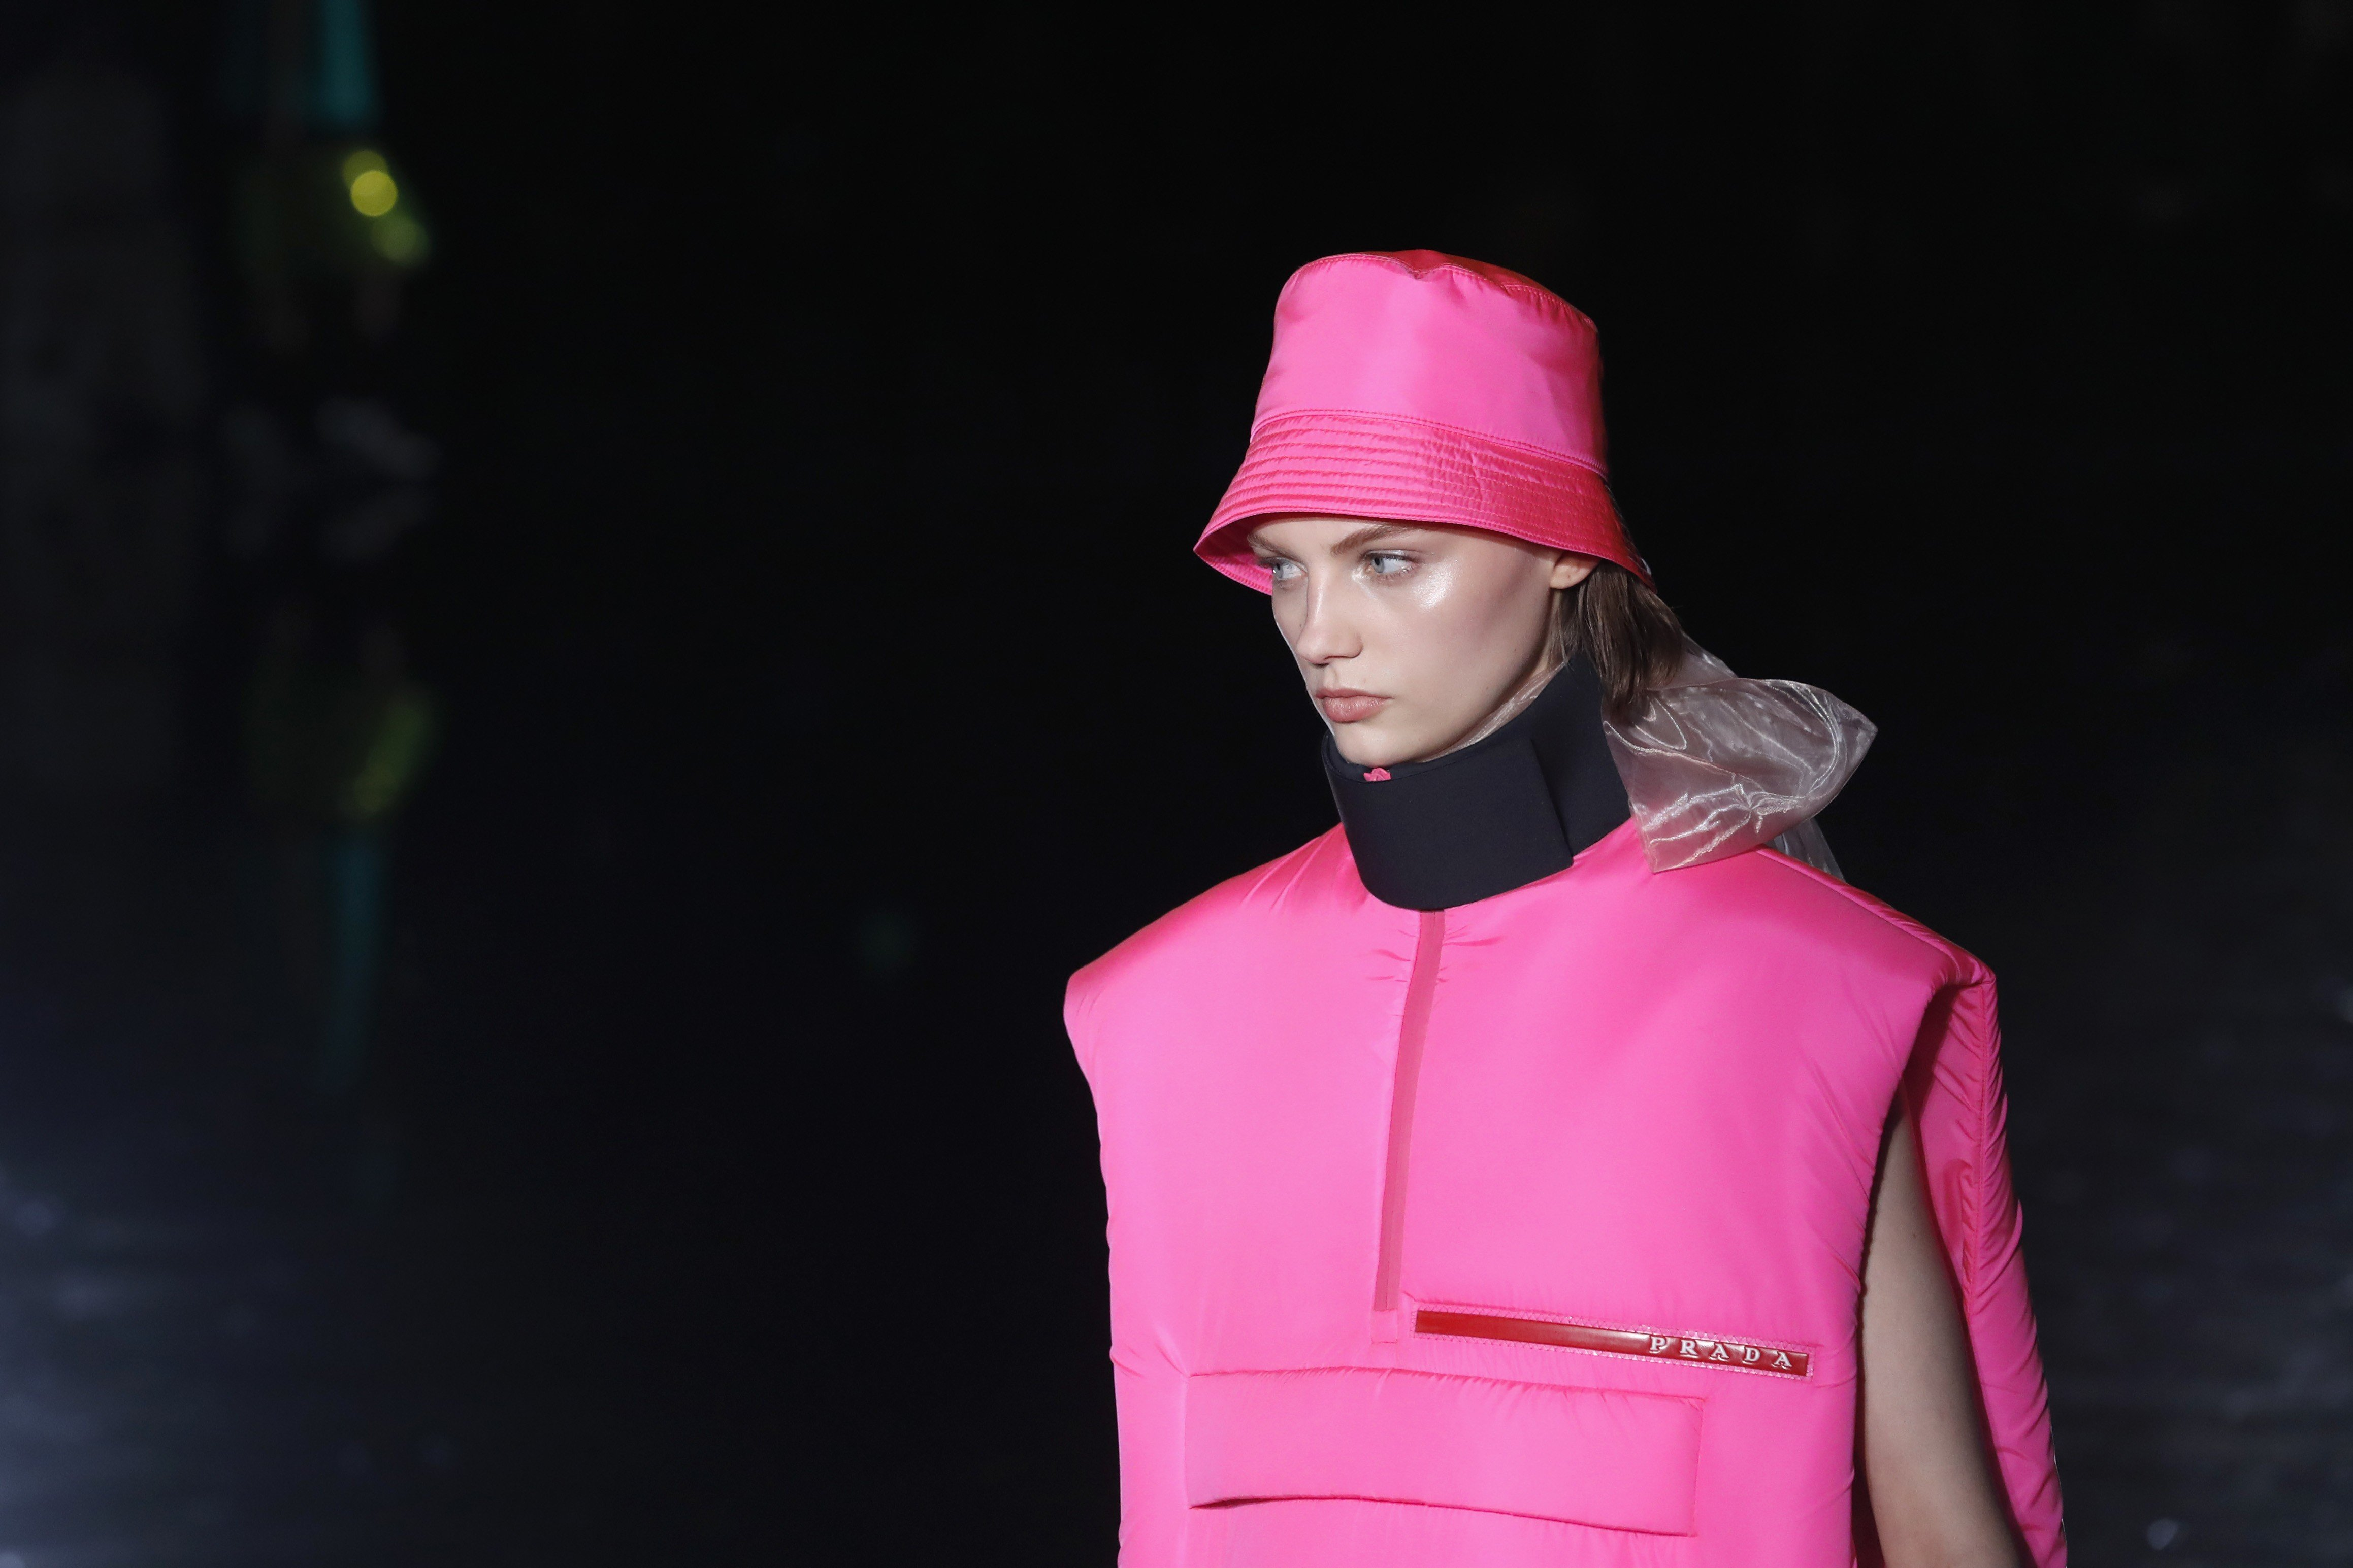 b1ae4d322f9bad Milan Fashion Week: Prada collection's colourful bold lines delight fans    South China Morning Post